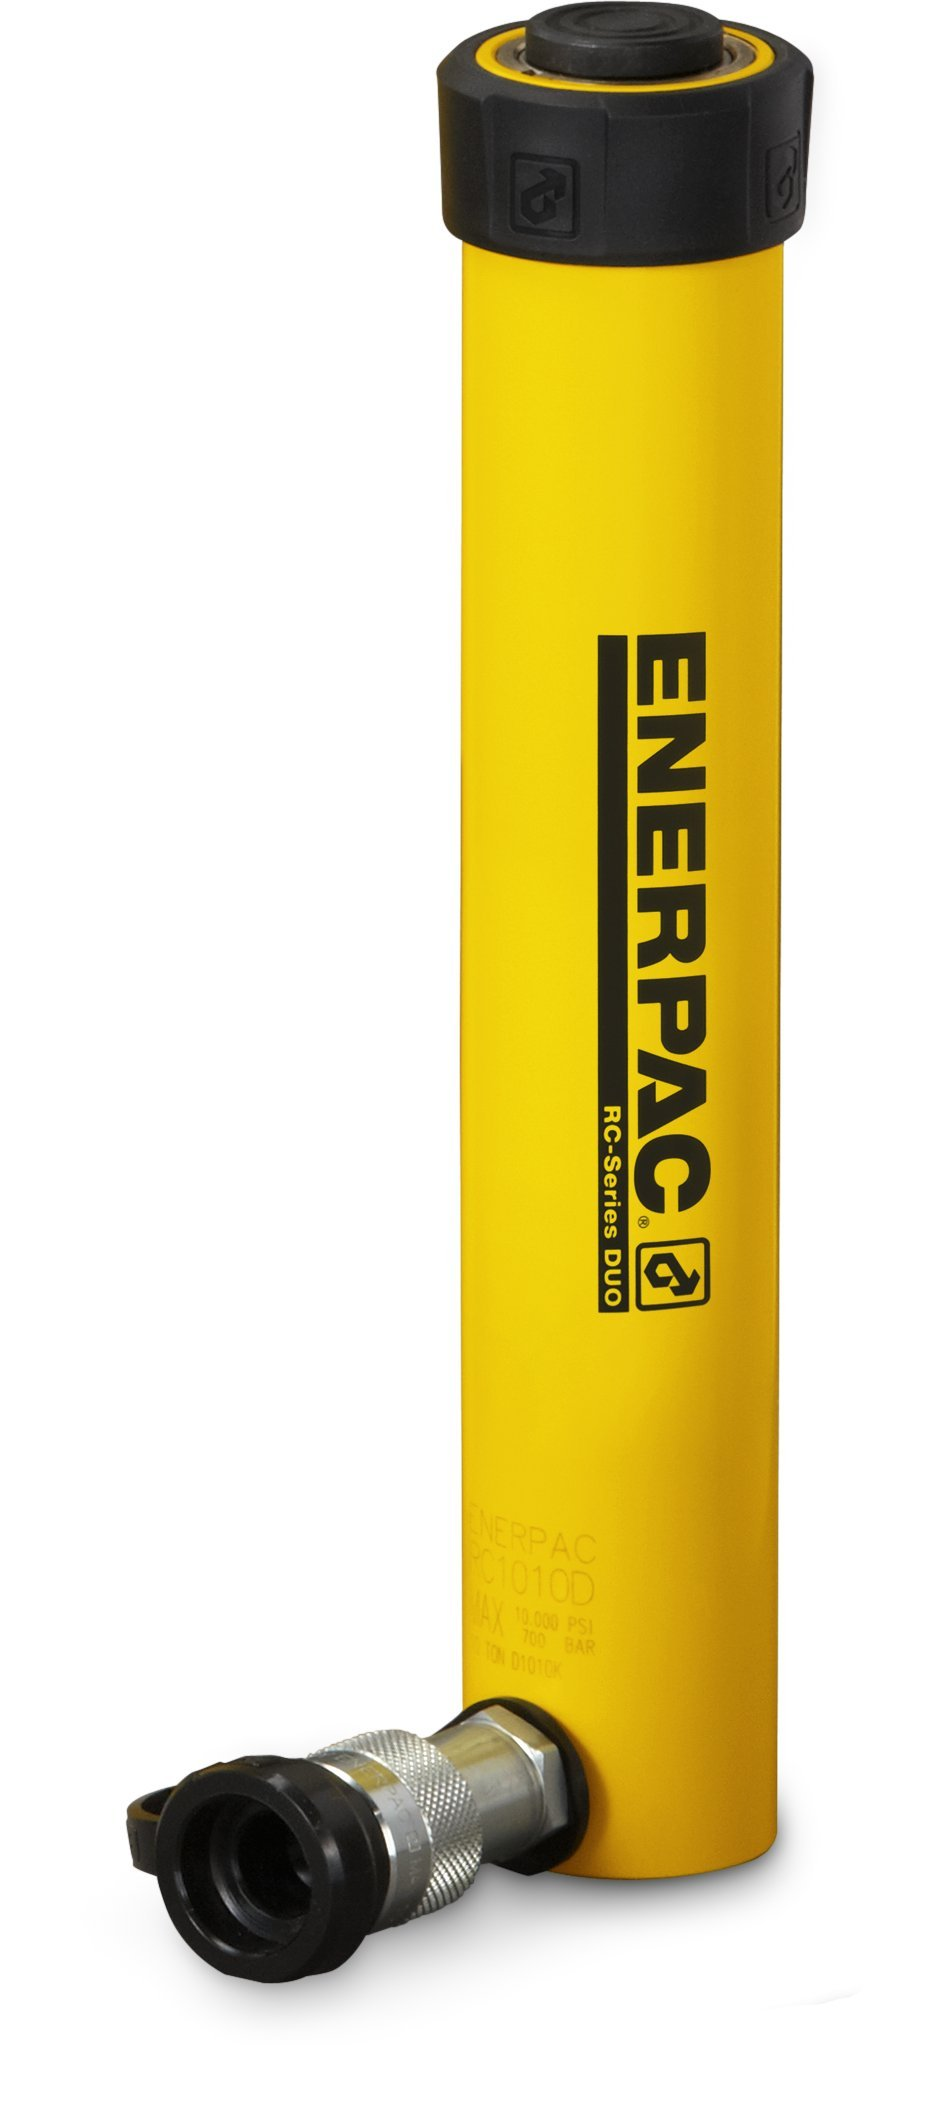 Enerpac RC-1010 Single-Acting Alloy Steel Hydraulic Cylinder with 10 Ton Capacity, Single Port, 10.13'' Stroke by Enerpac (Image #1)